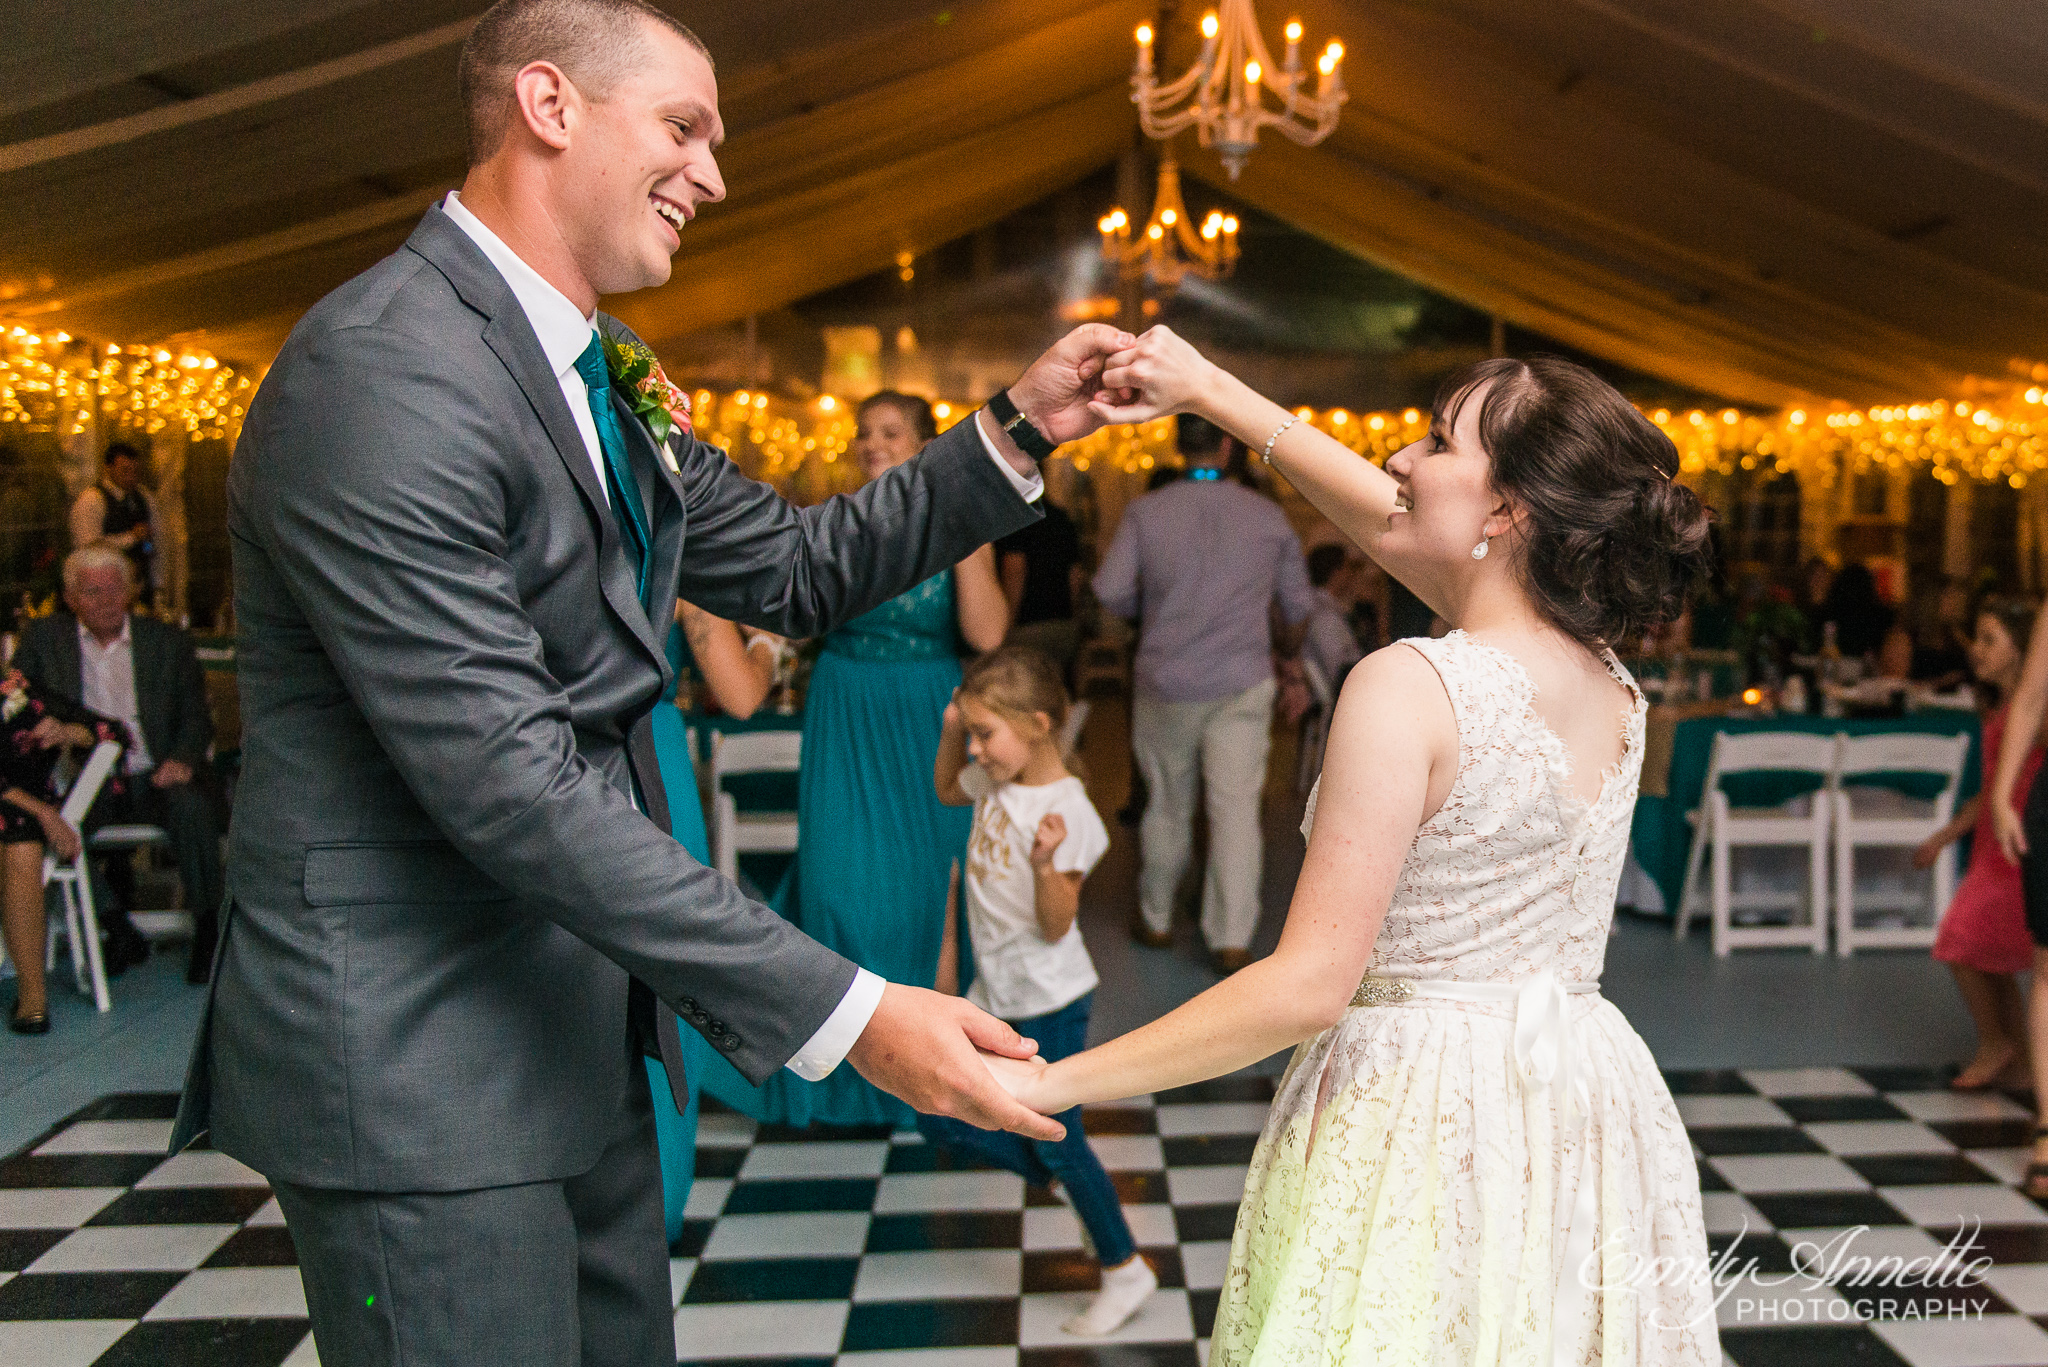 A bride and groom dance together during a country wedding reception at Amber Grove near Richmond, Virginia